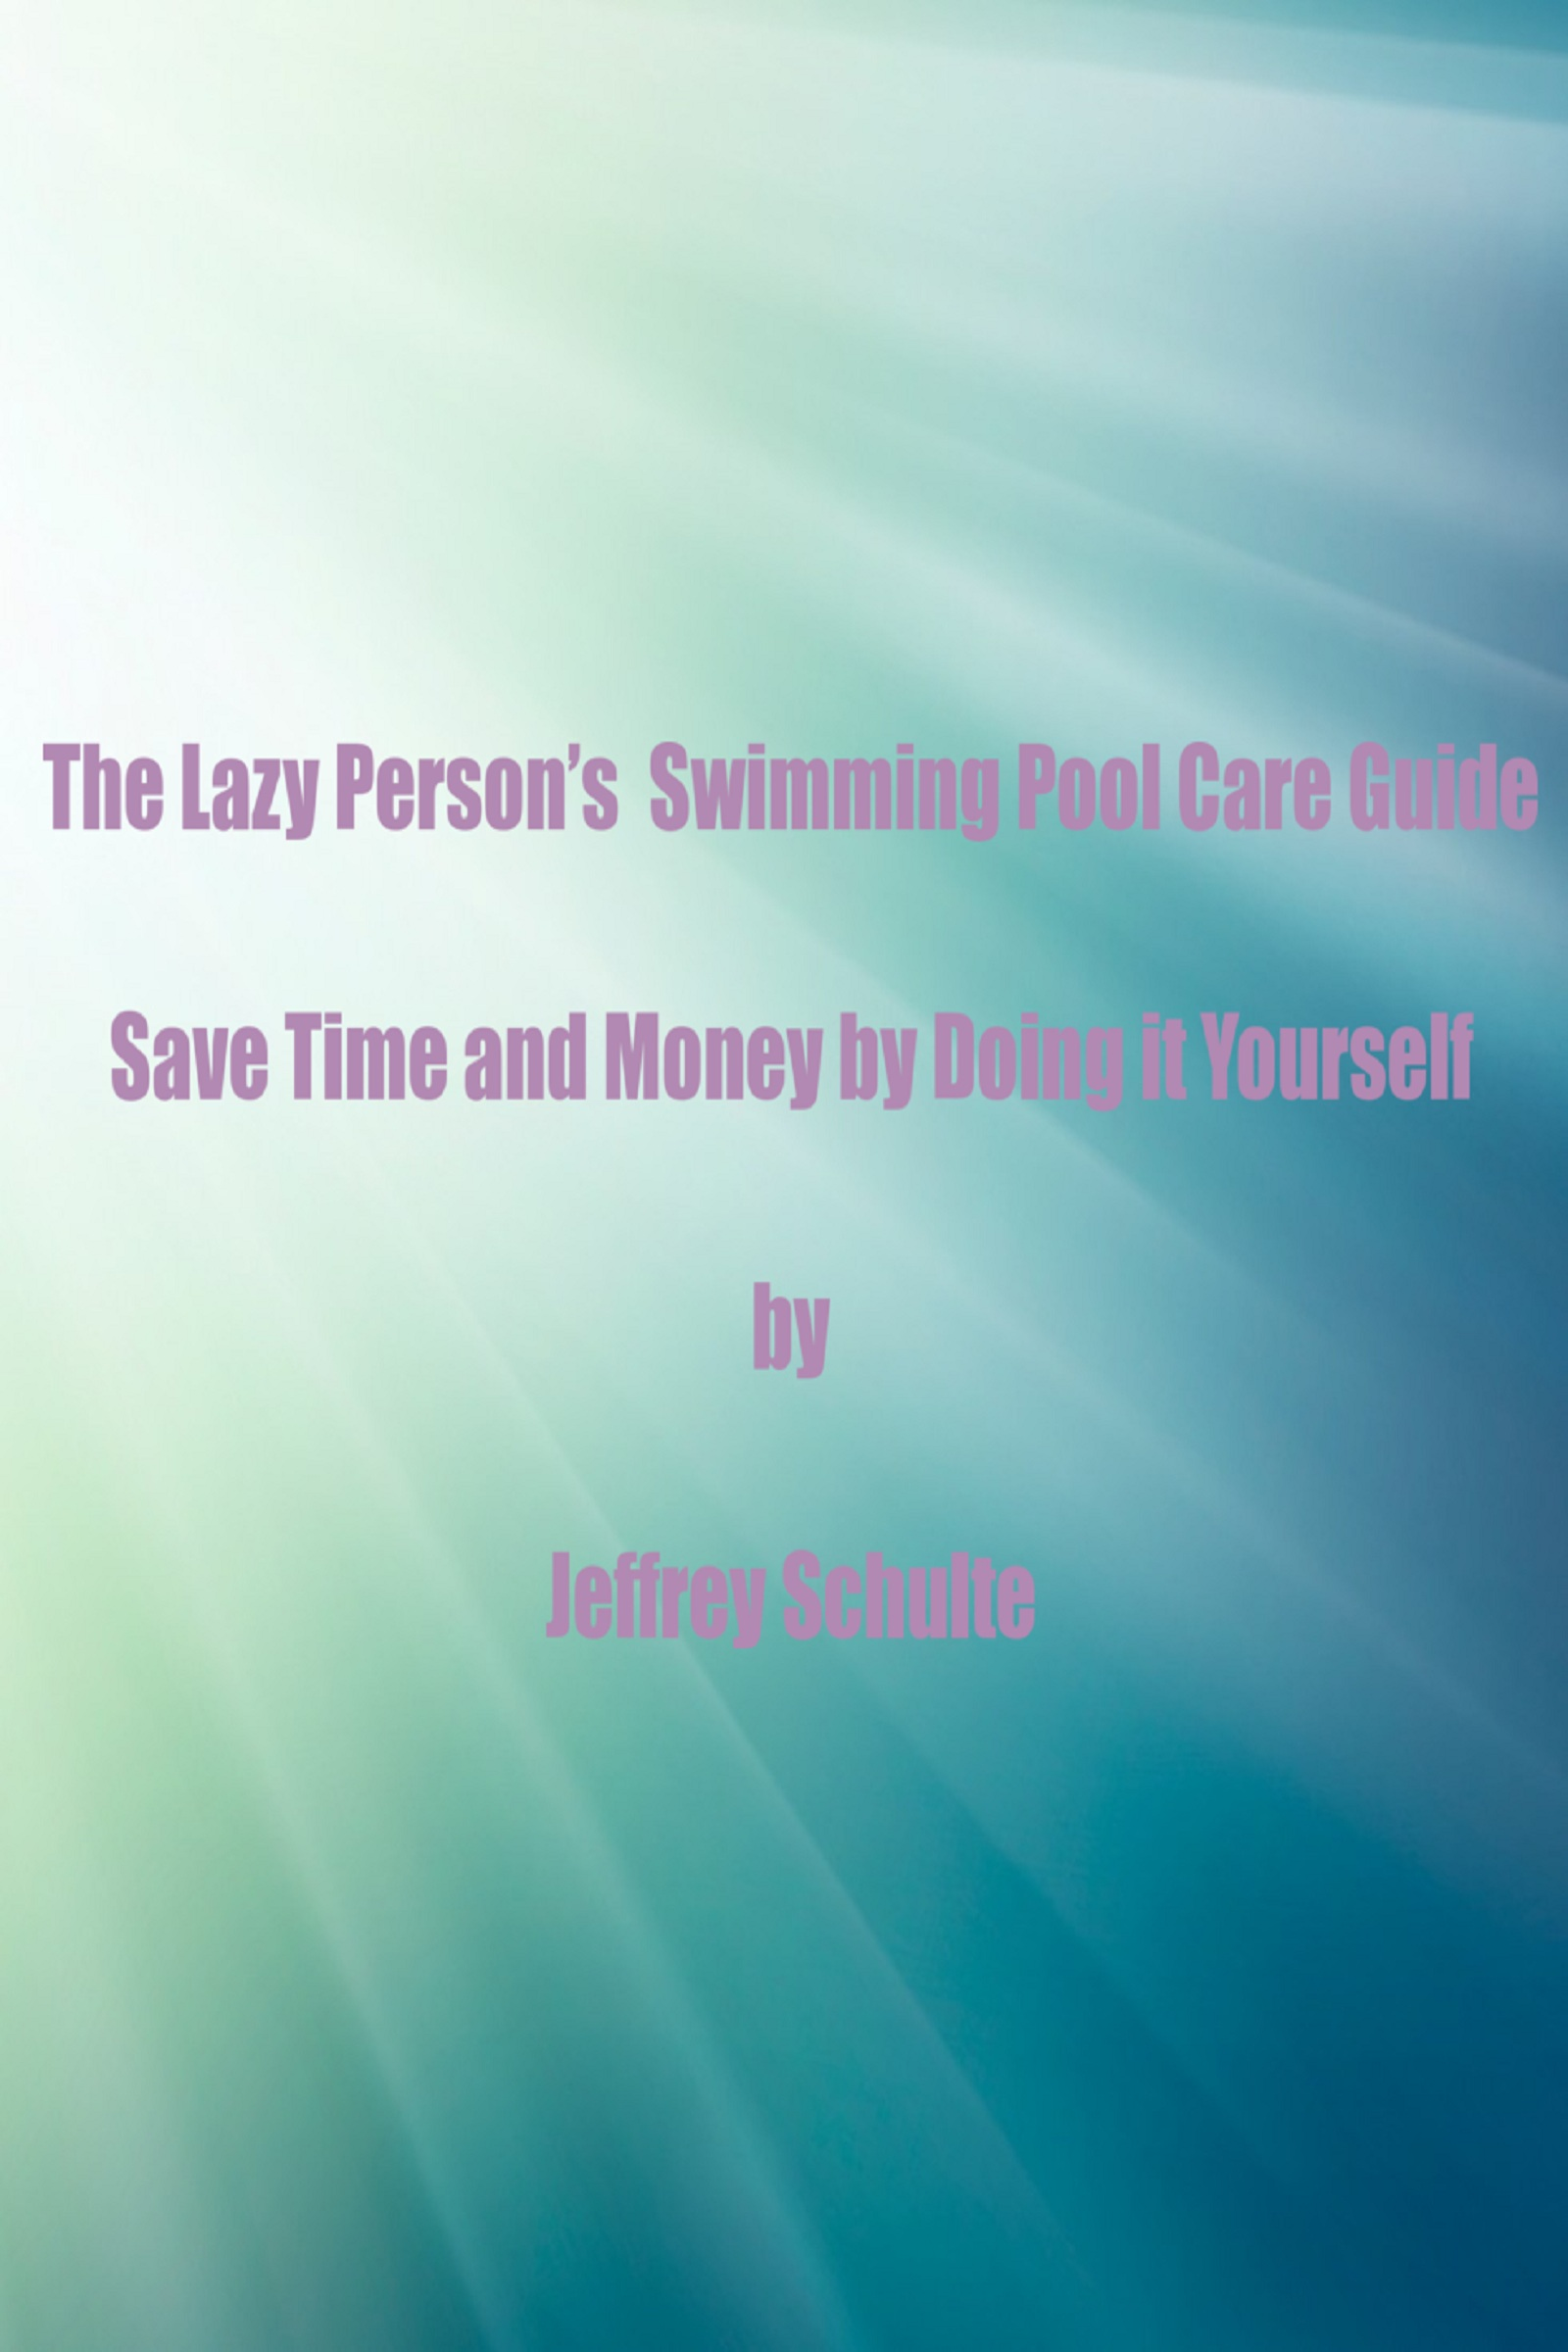 The Lazy Person's Swimming Pool Care Guide